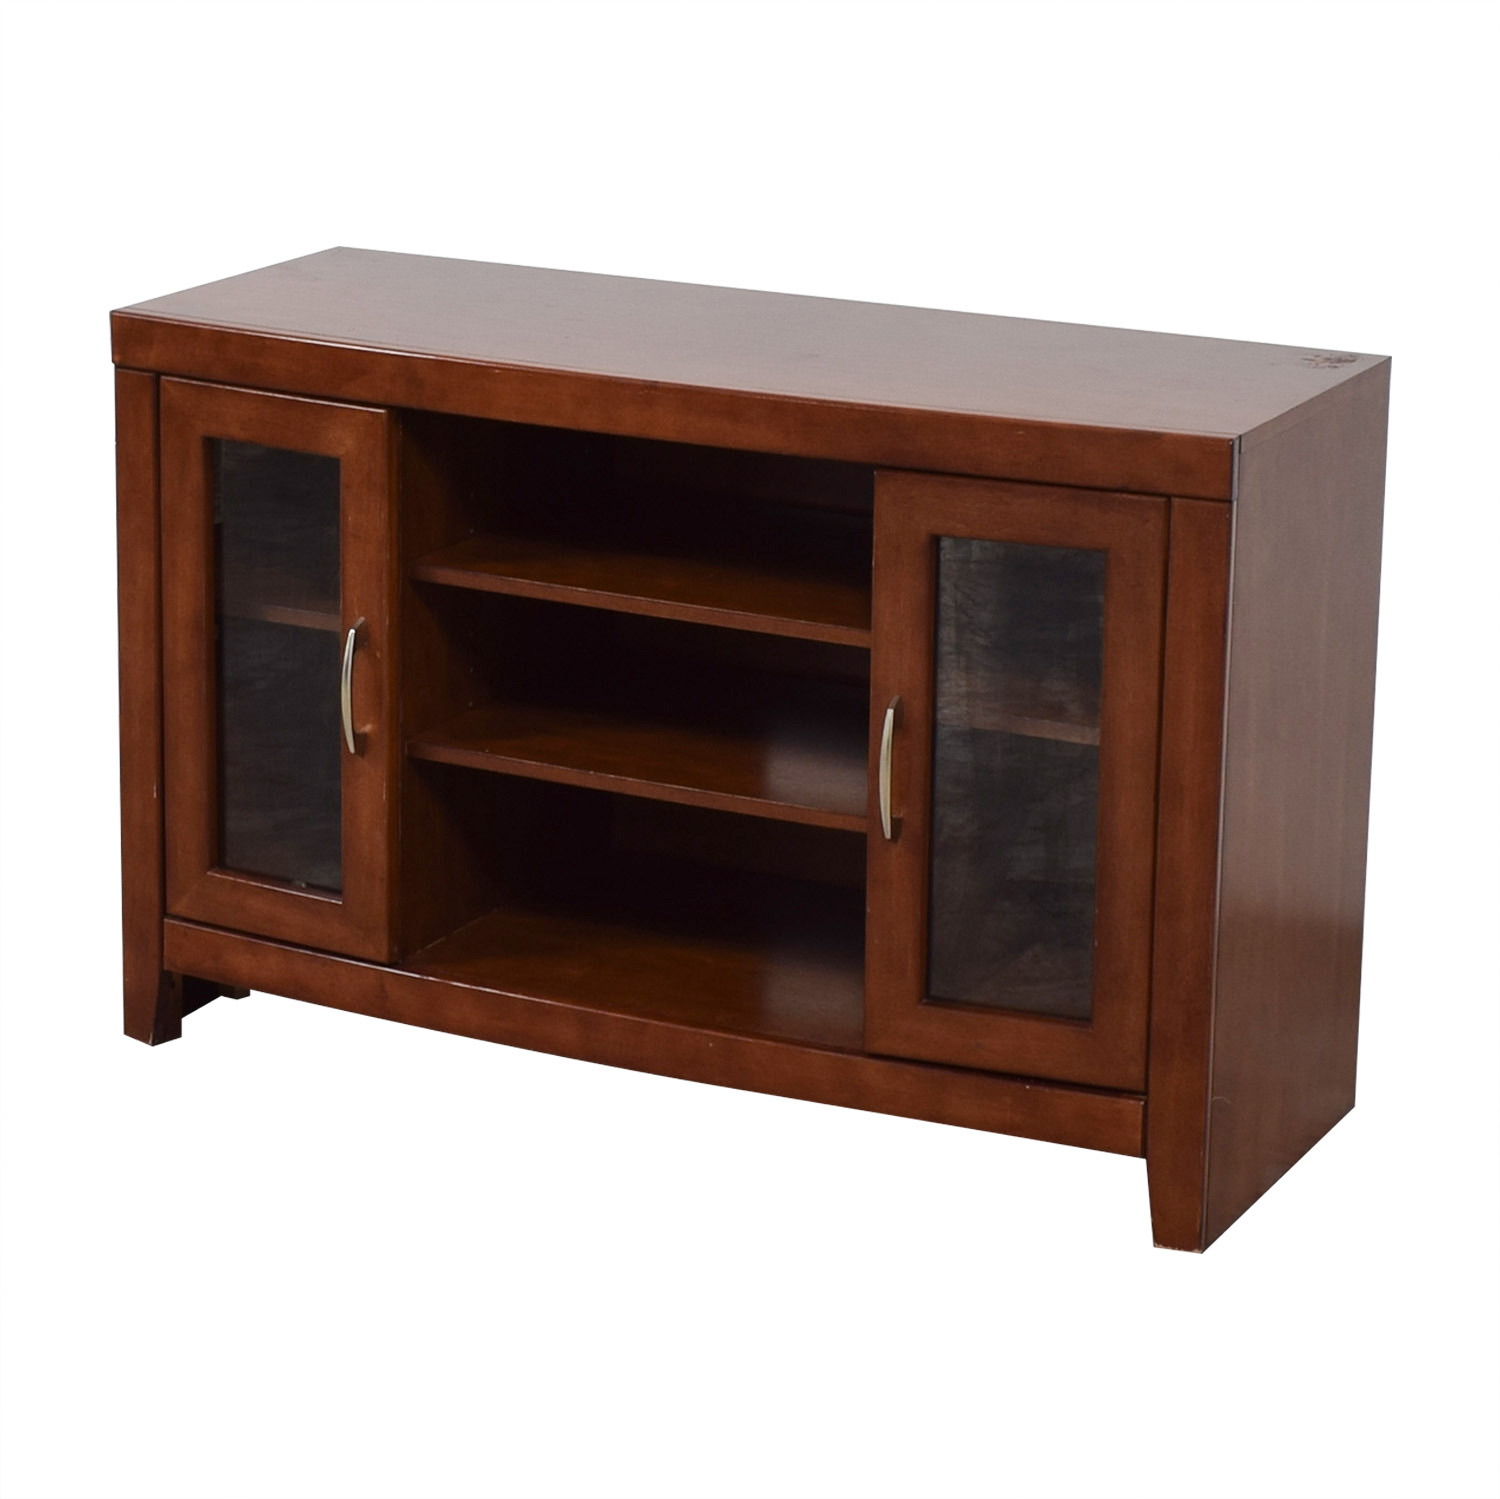 shop Raymour & Flanigan Raymour & Flanigan Del Mar Cherry TV Stand online